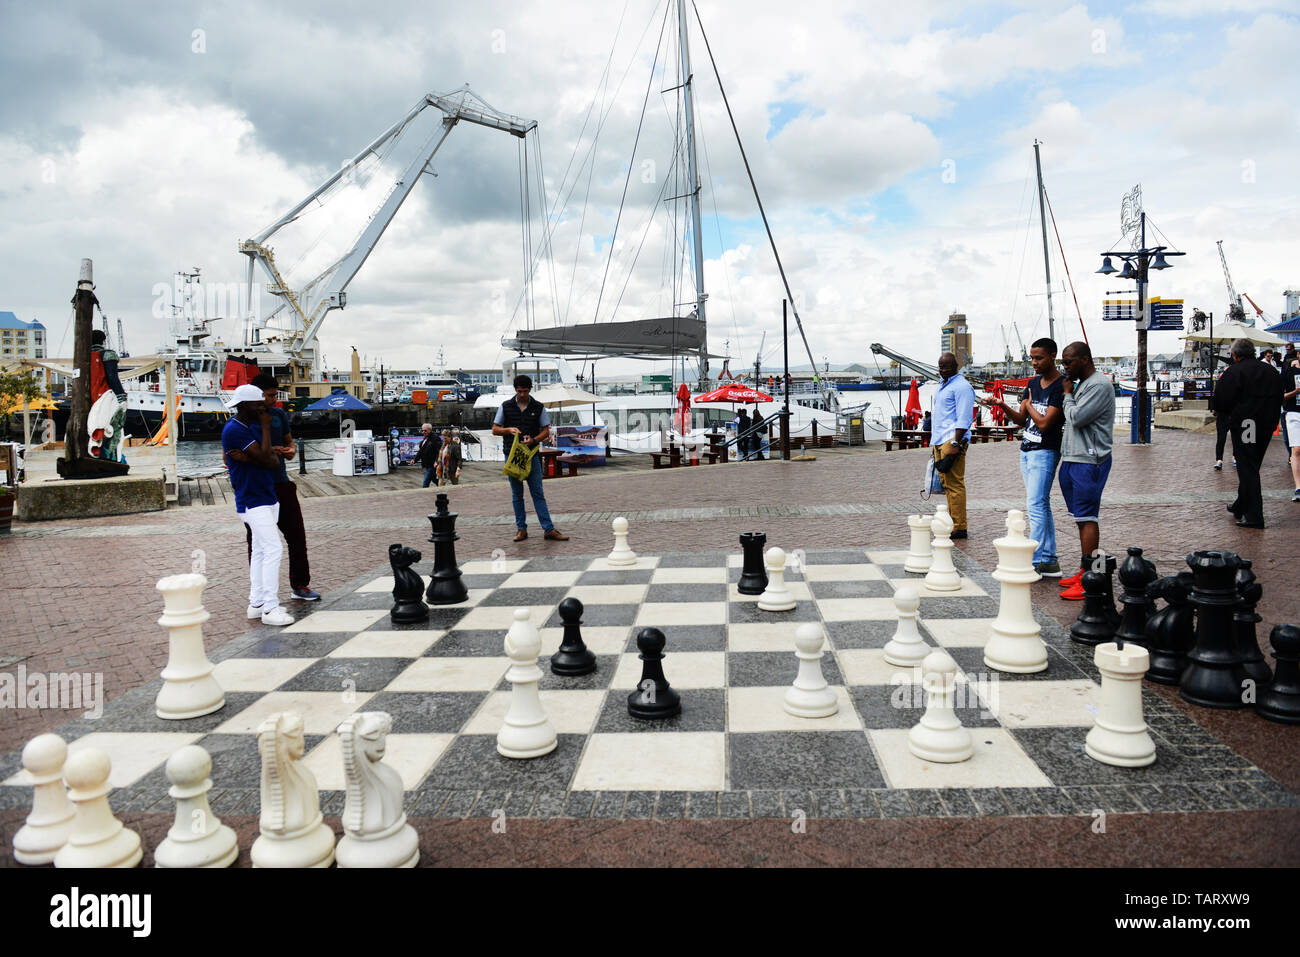 A 'Giant' chess game at the vibrant V&A water front area in Cape Town, South Africa. - Stock Image